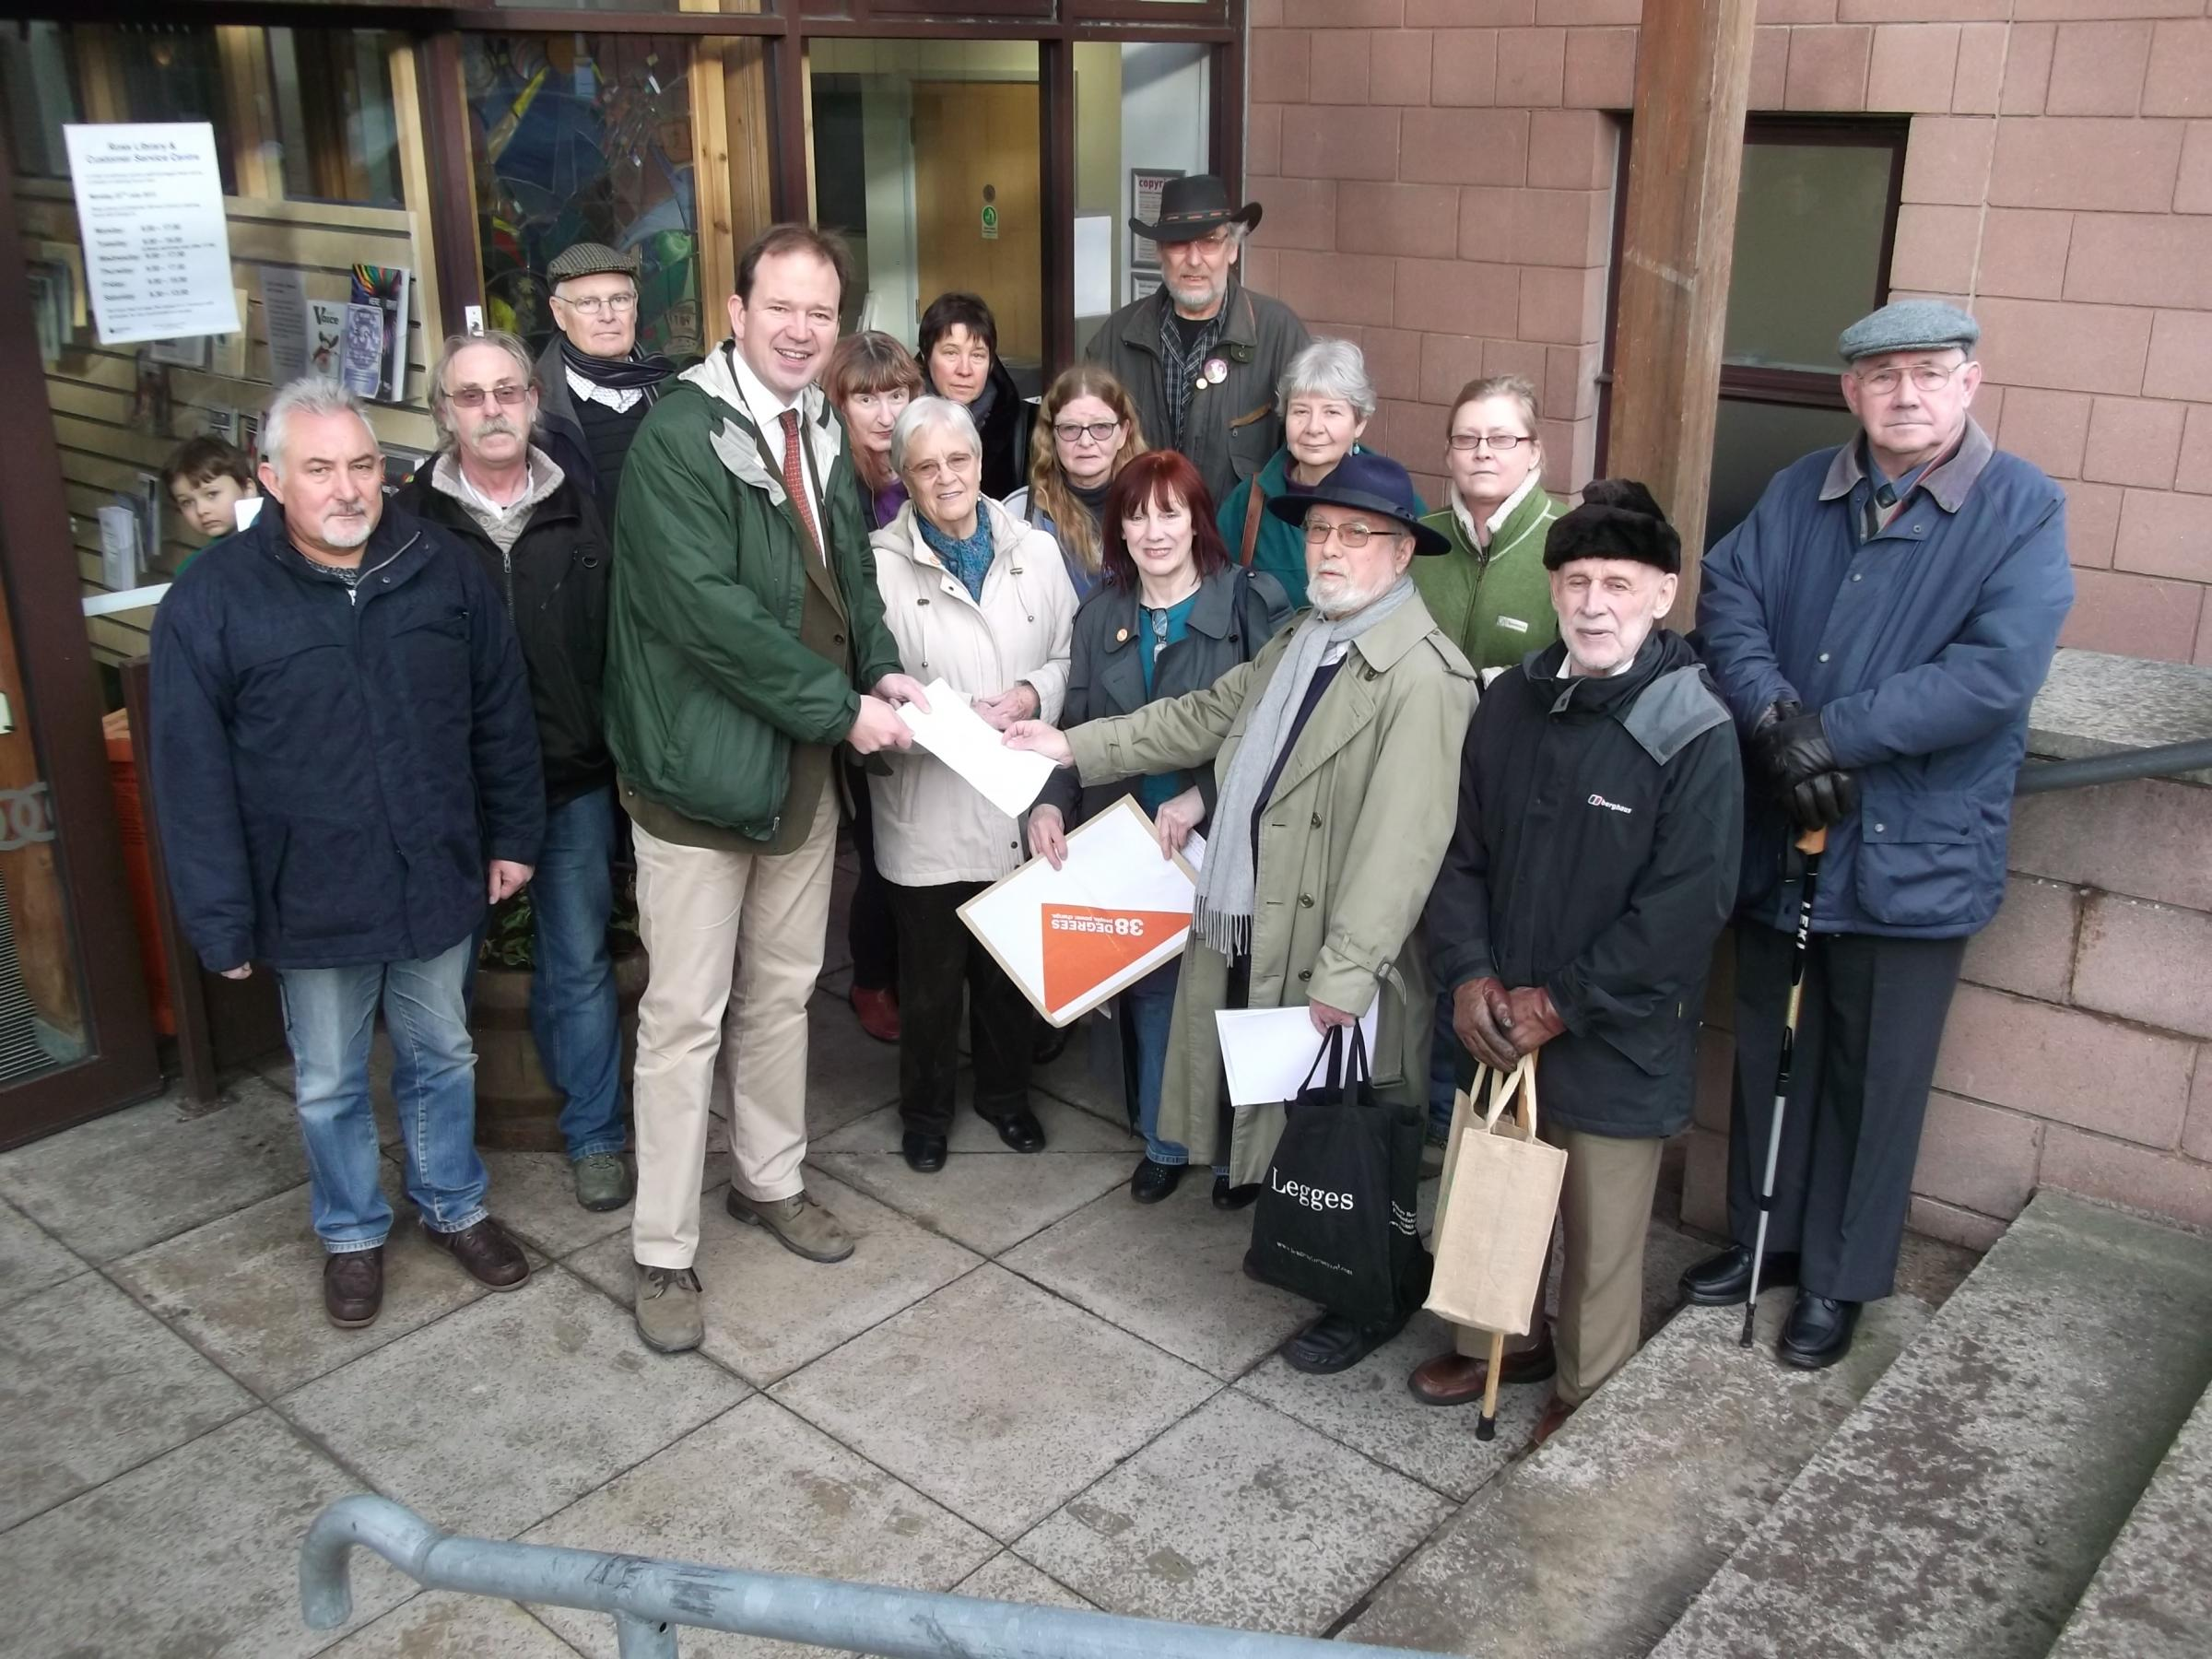 Hereford and South Herefordshire MP Jesse Norman is handed a gagging law petition outside Ross-on-Wye Library.